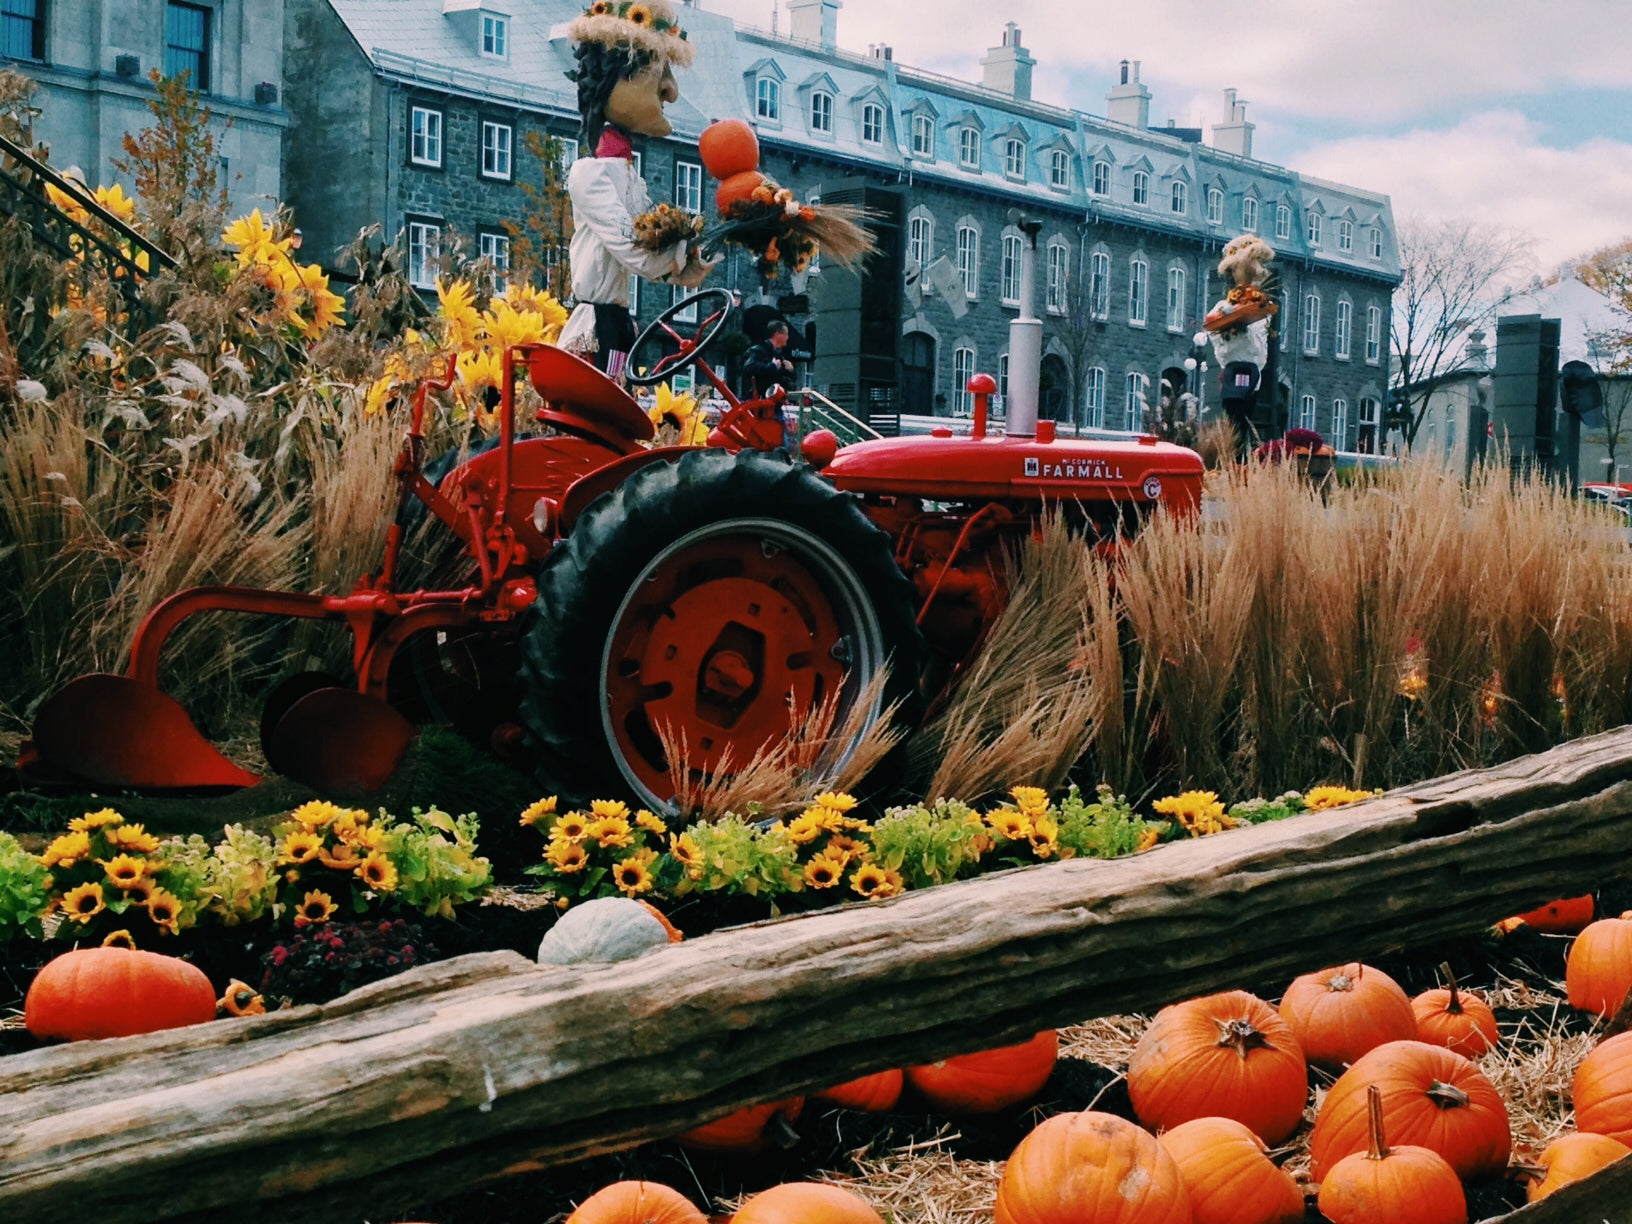 old quebec, old town, quebec, quebec city, fall, autumn, fall decor, fall festival, pumpkin, chateau frontenac, canada, canada travel